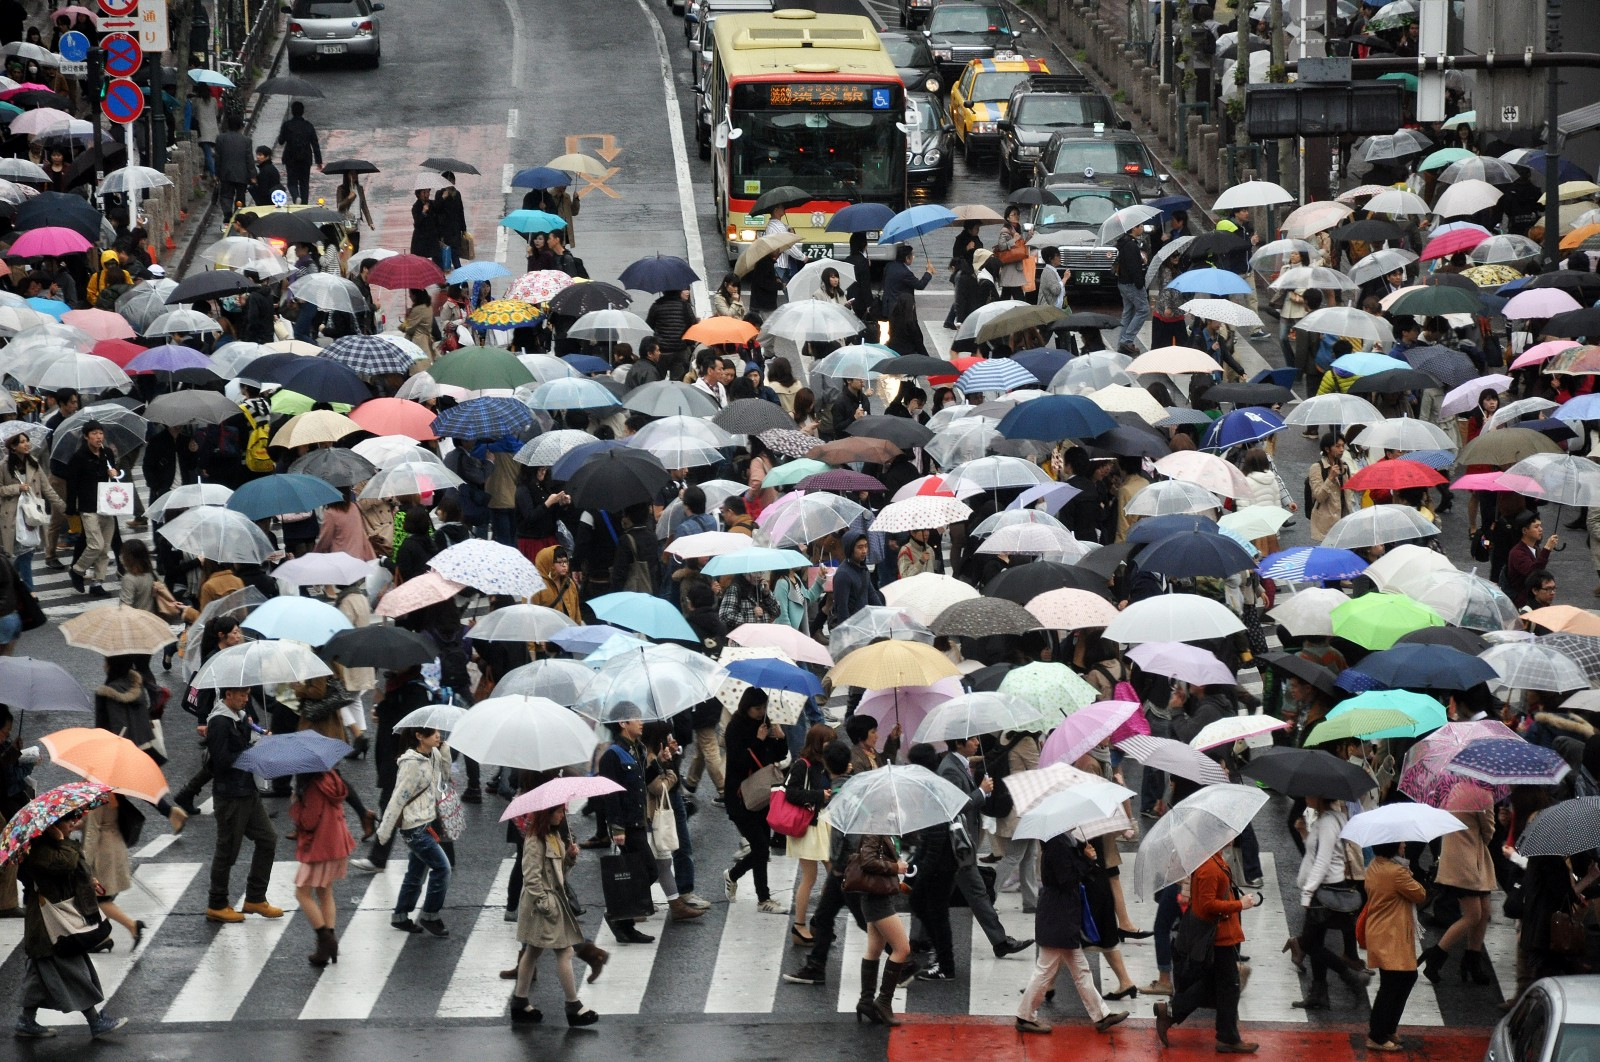 10 Best Things to Do in Tokyo on a Rainy Day